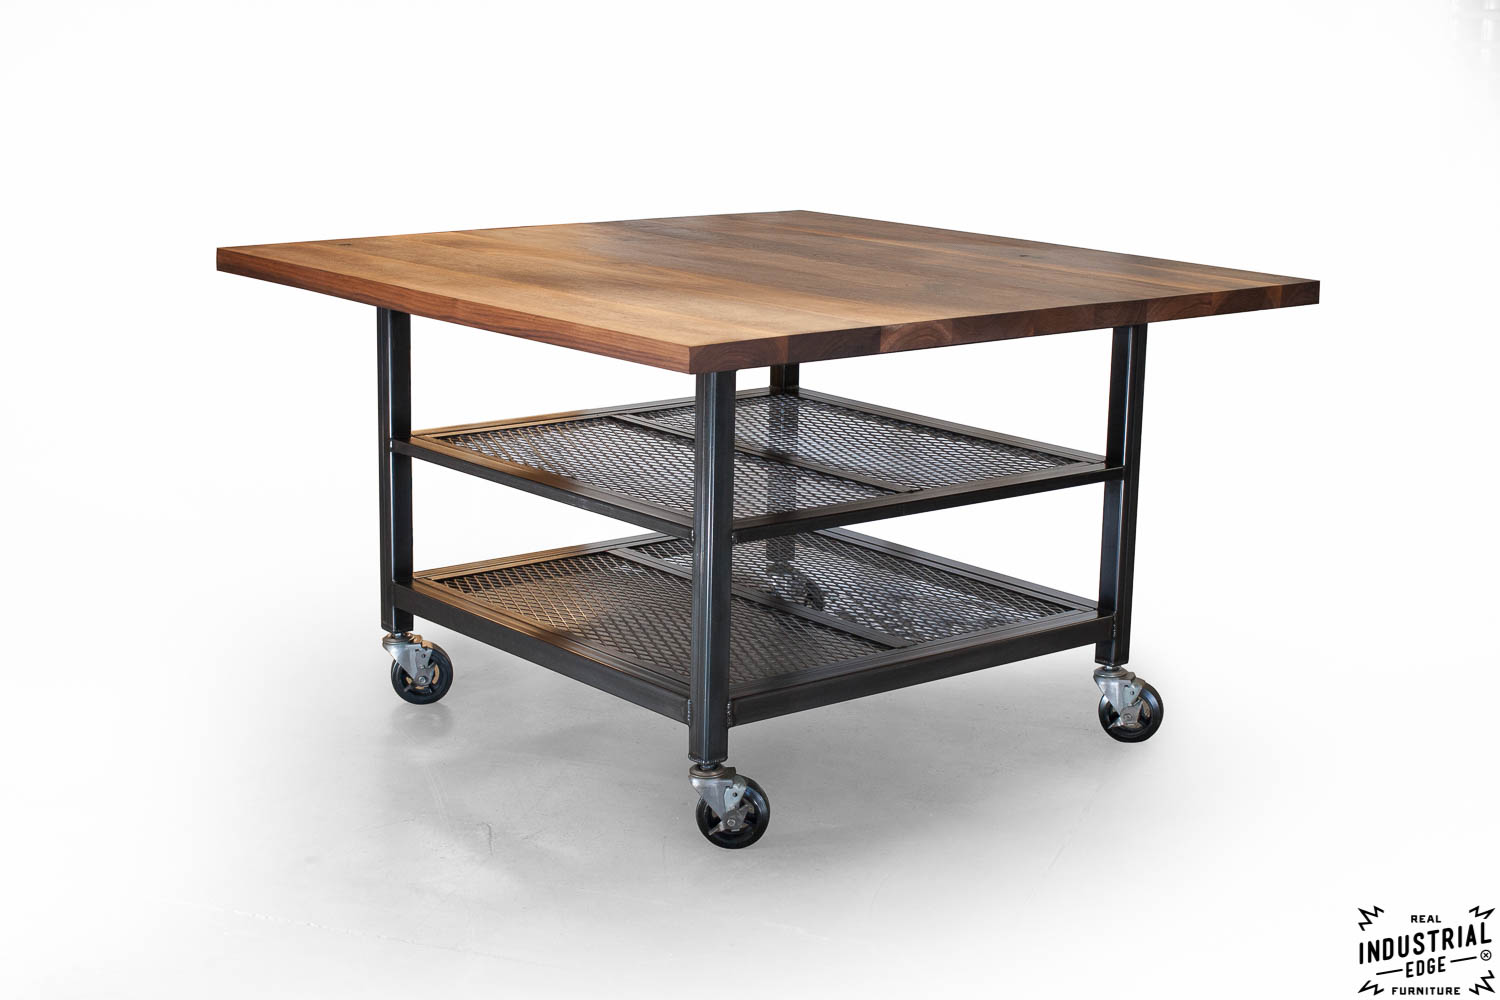 industrial kitchen table best deals on appliances walnut and steel island dining